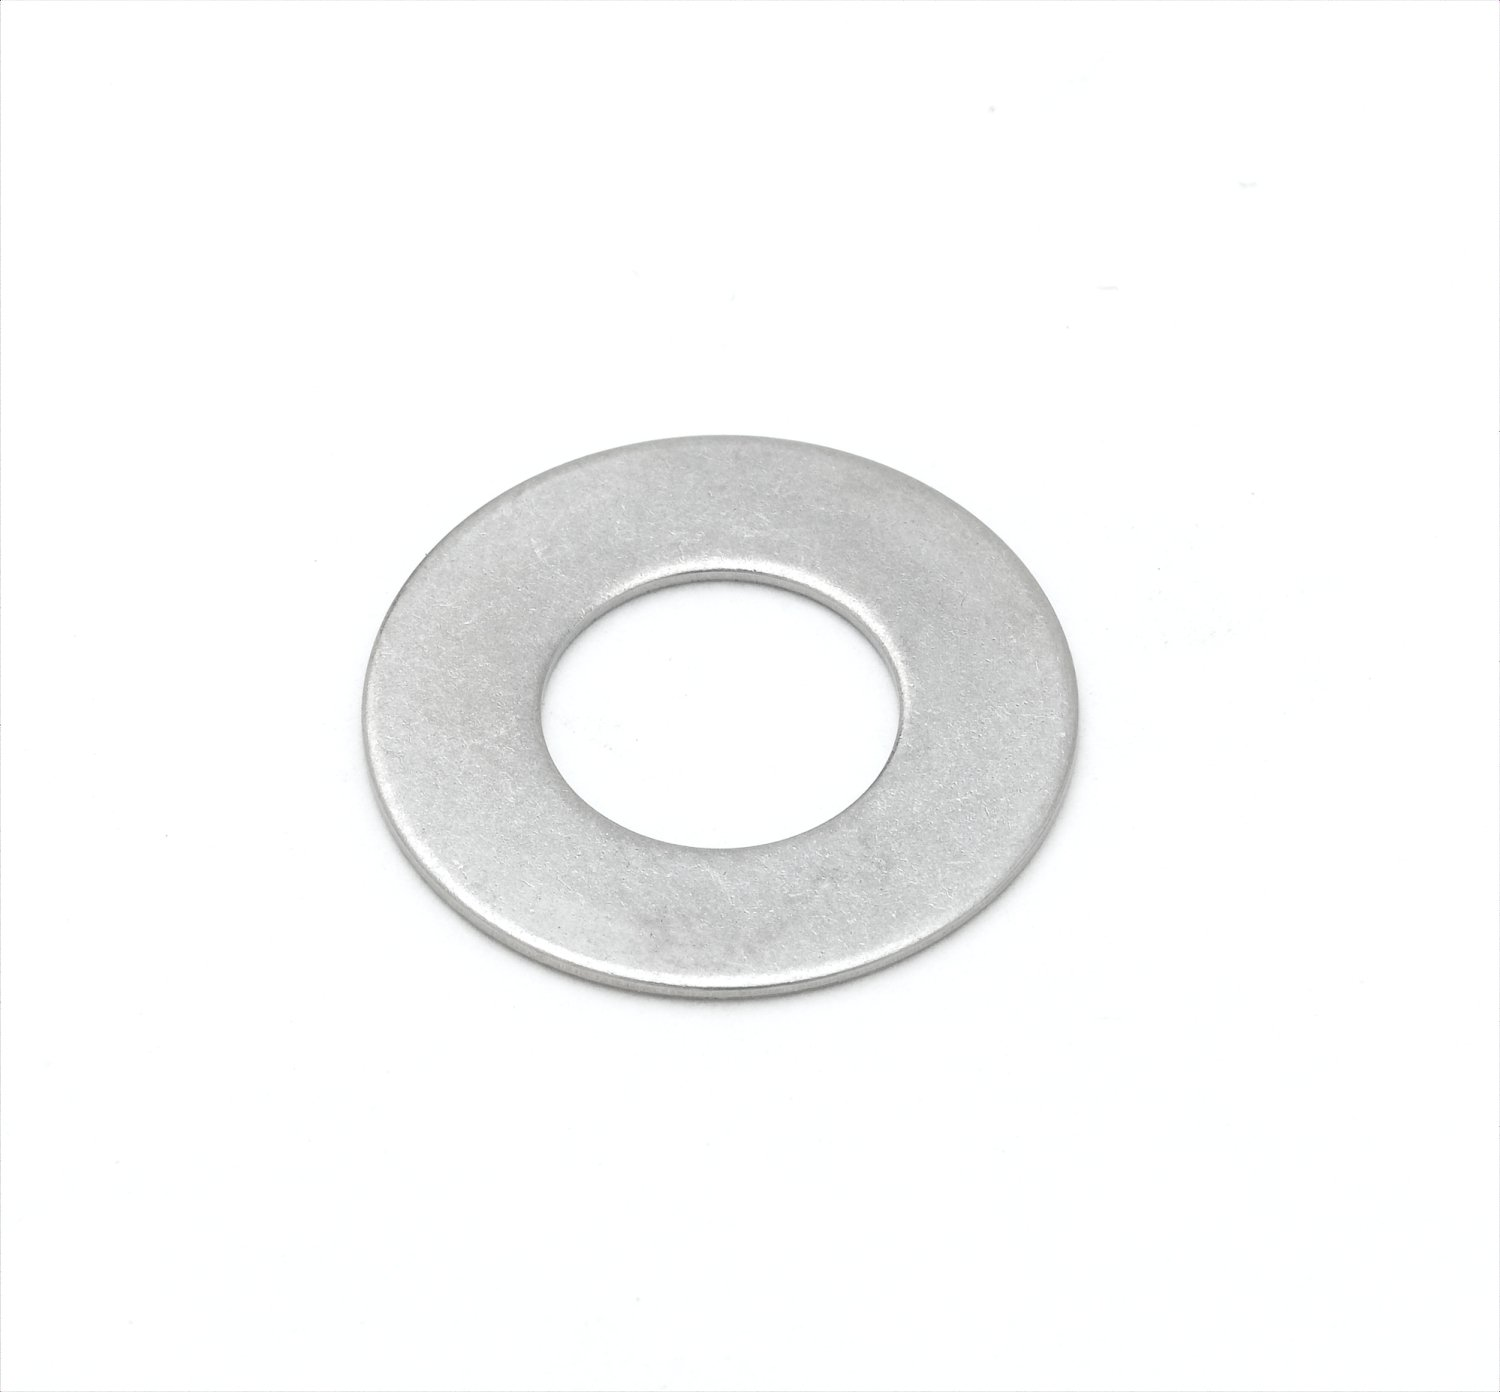 T/&S Brass 002726-45 Stainless Steel Washer